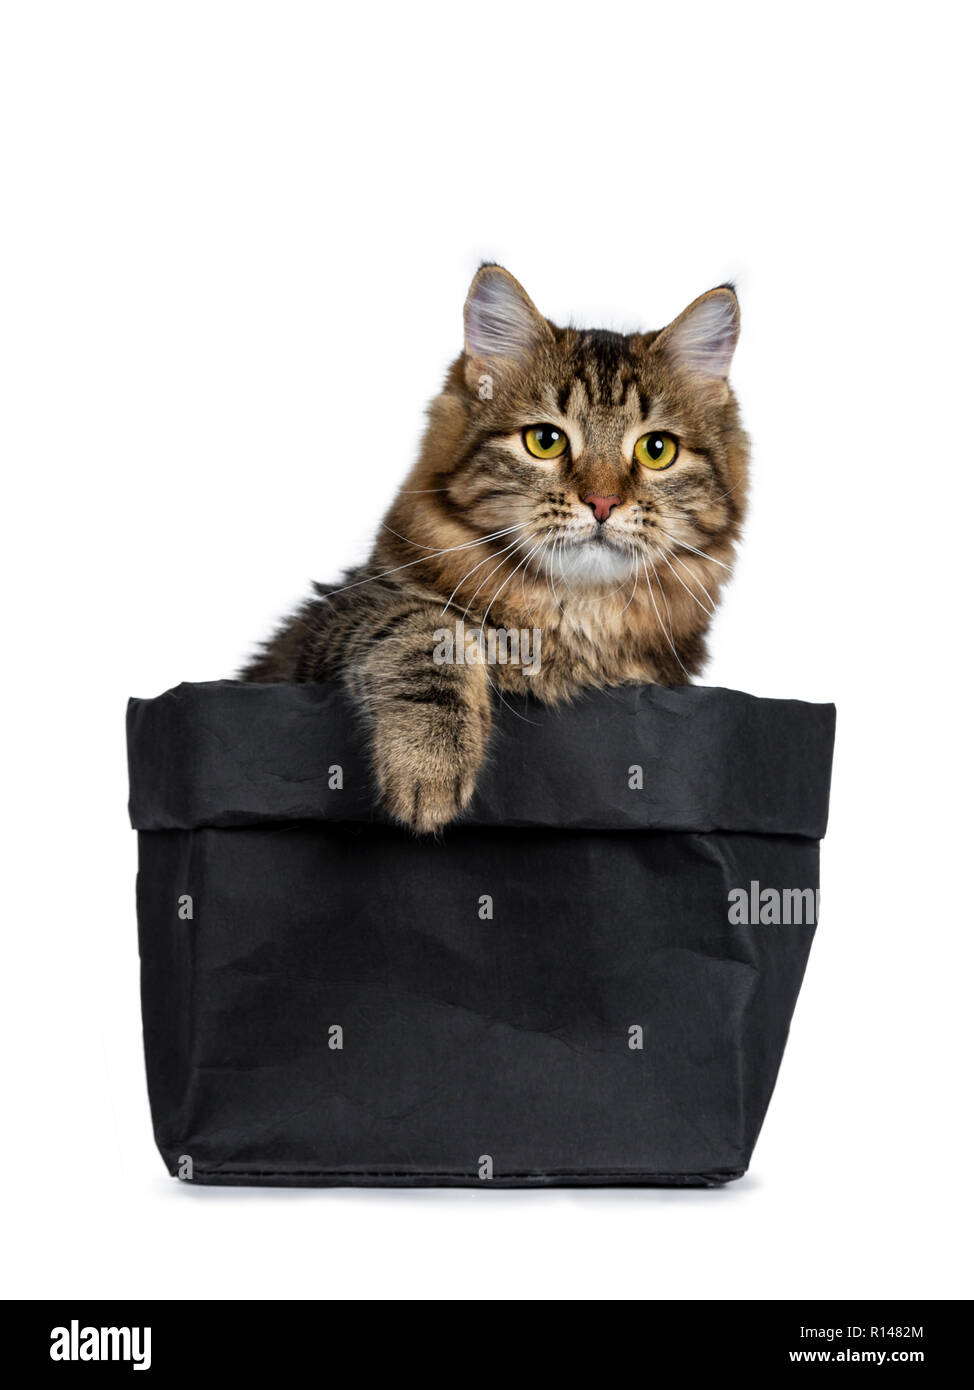 Adorable black tabby Siberian cat kitten sitting in black paper bag with one paw on the edge of the bag, looking focussed ahead beside camera. Isolate - Stock Image